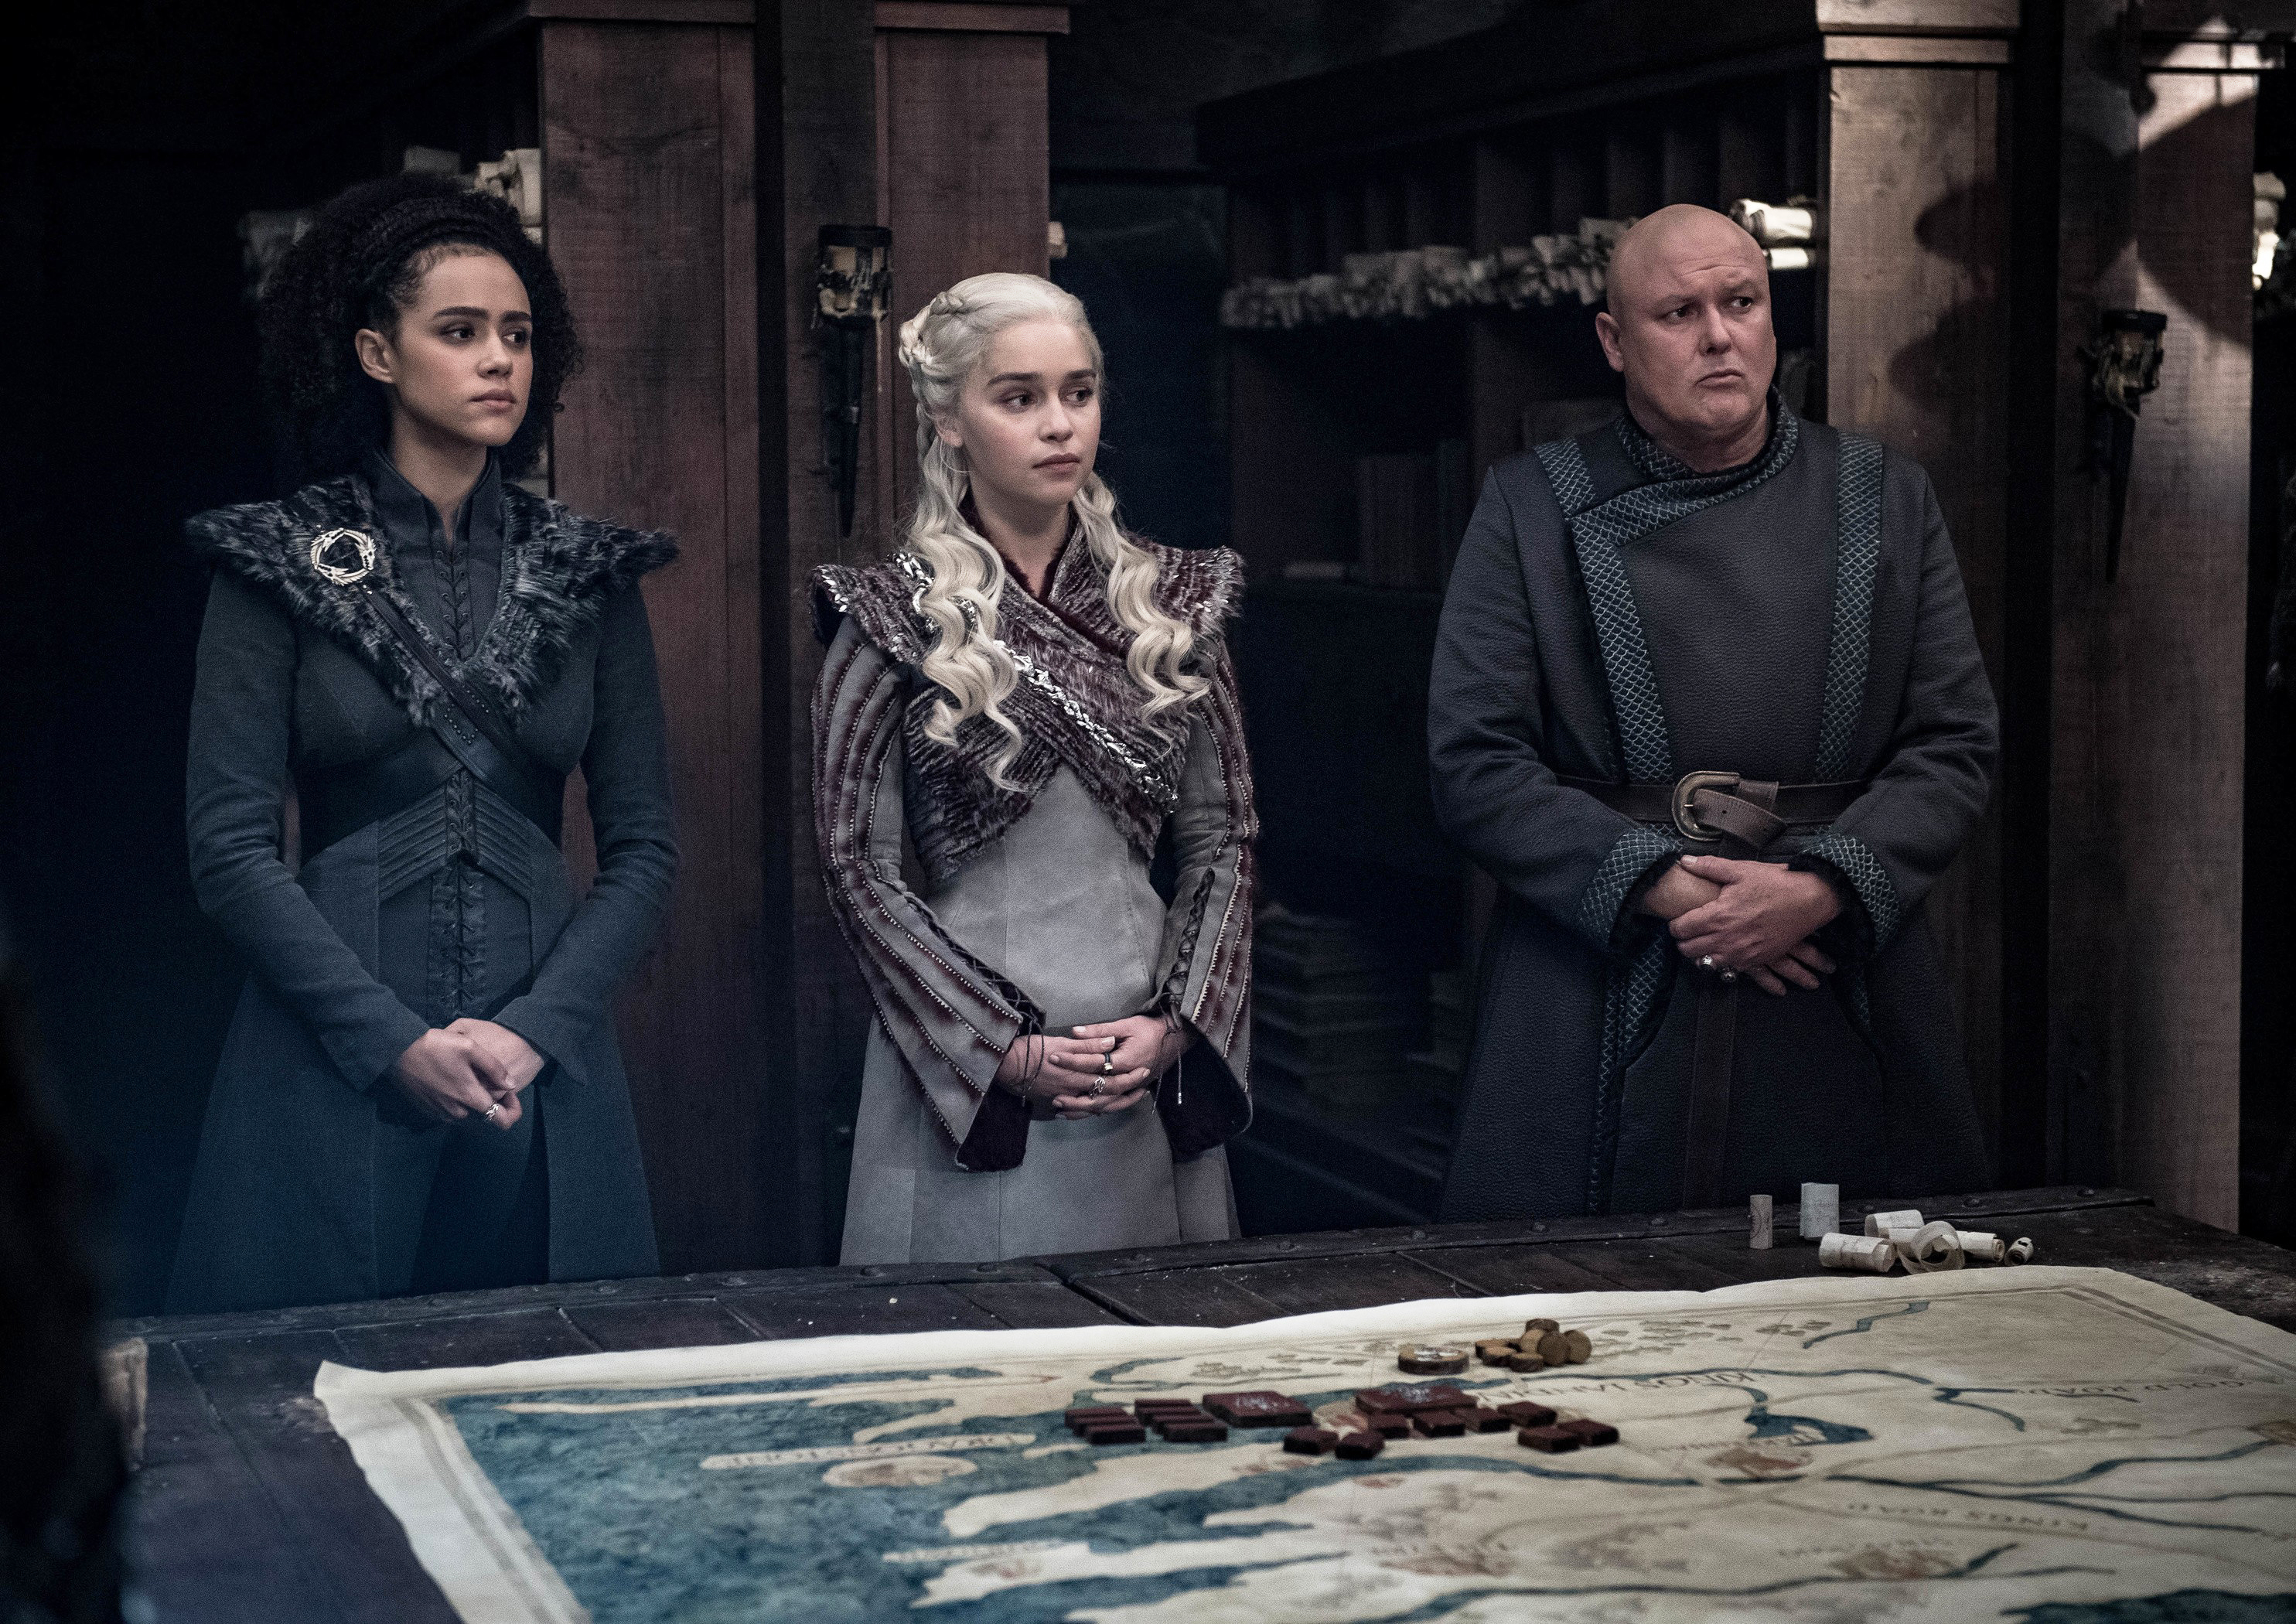 8x04 - The Last of the Starks - Missandei, Daenerys and Varys